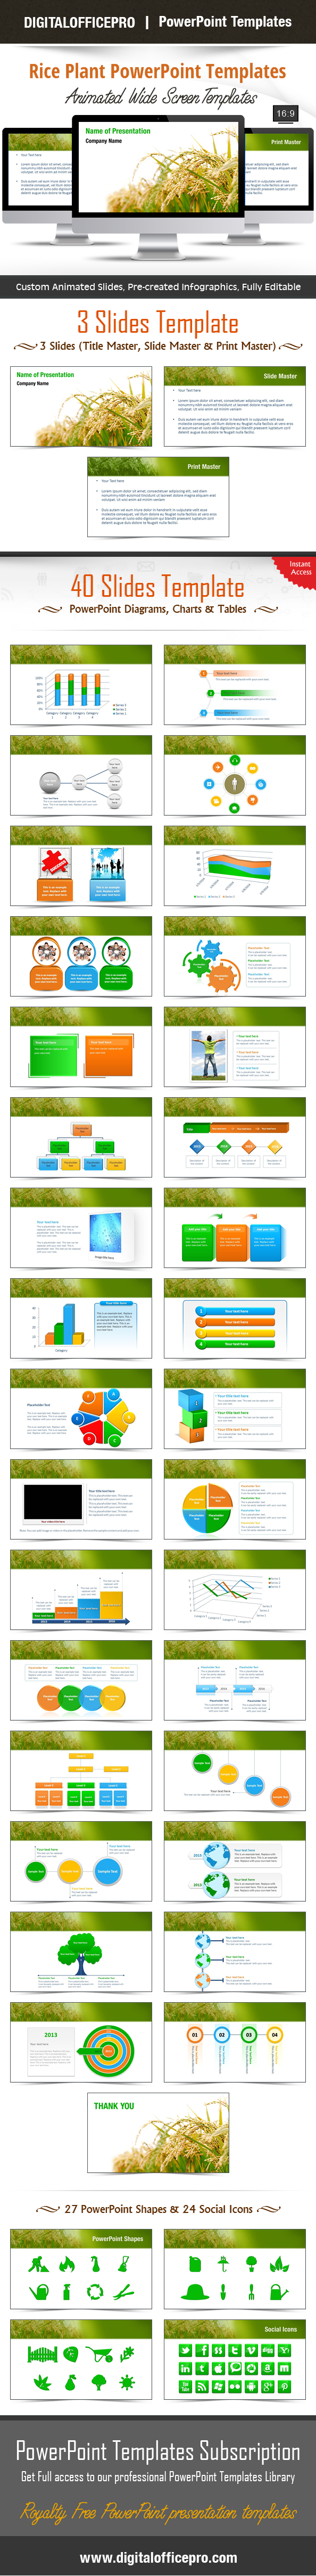 Rice plant powerpoint template backgrounds powerpoint templates impress and engage your audience with rice plant powerpoint template and rice plant powerpoint backgrounds from digitalofficepro each template comes with a toneelgroepblik